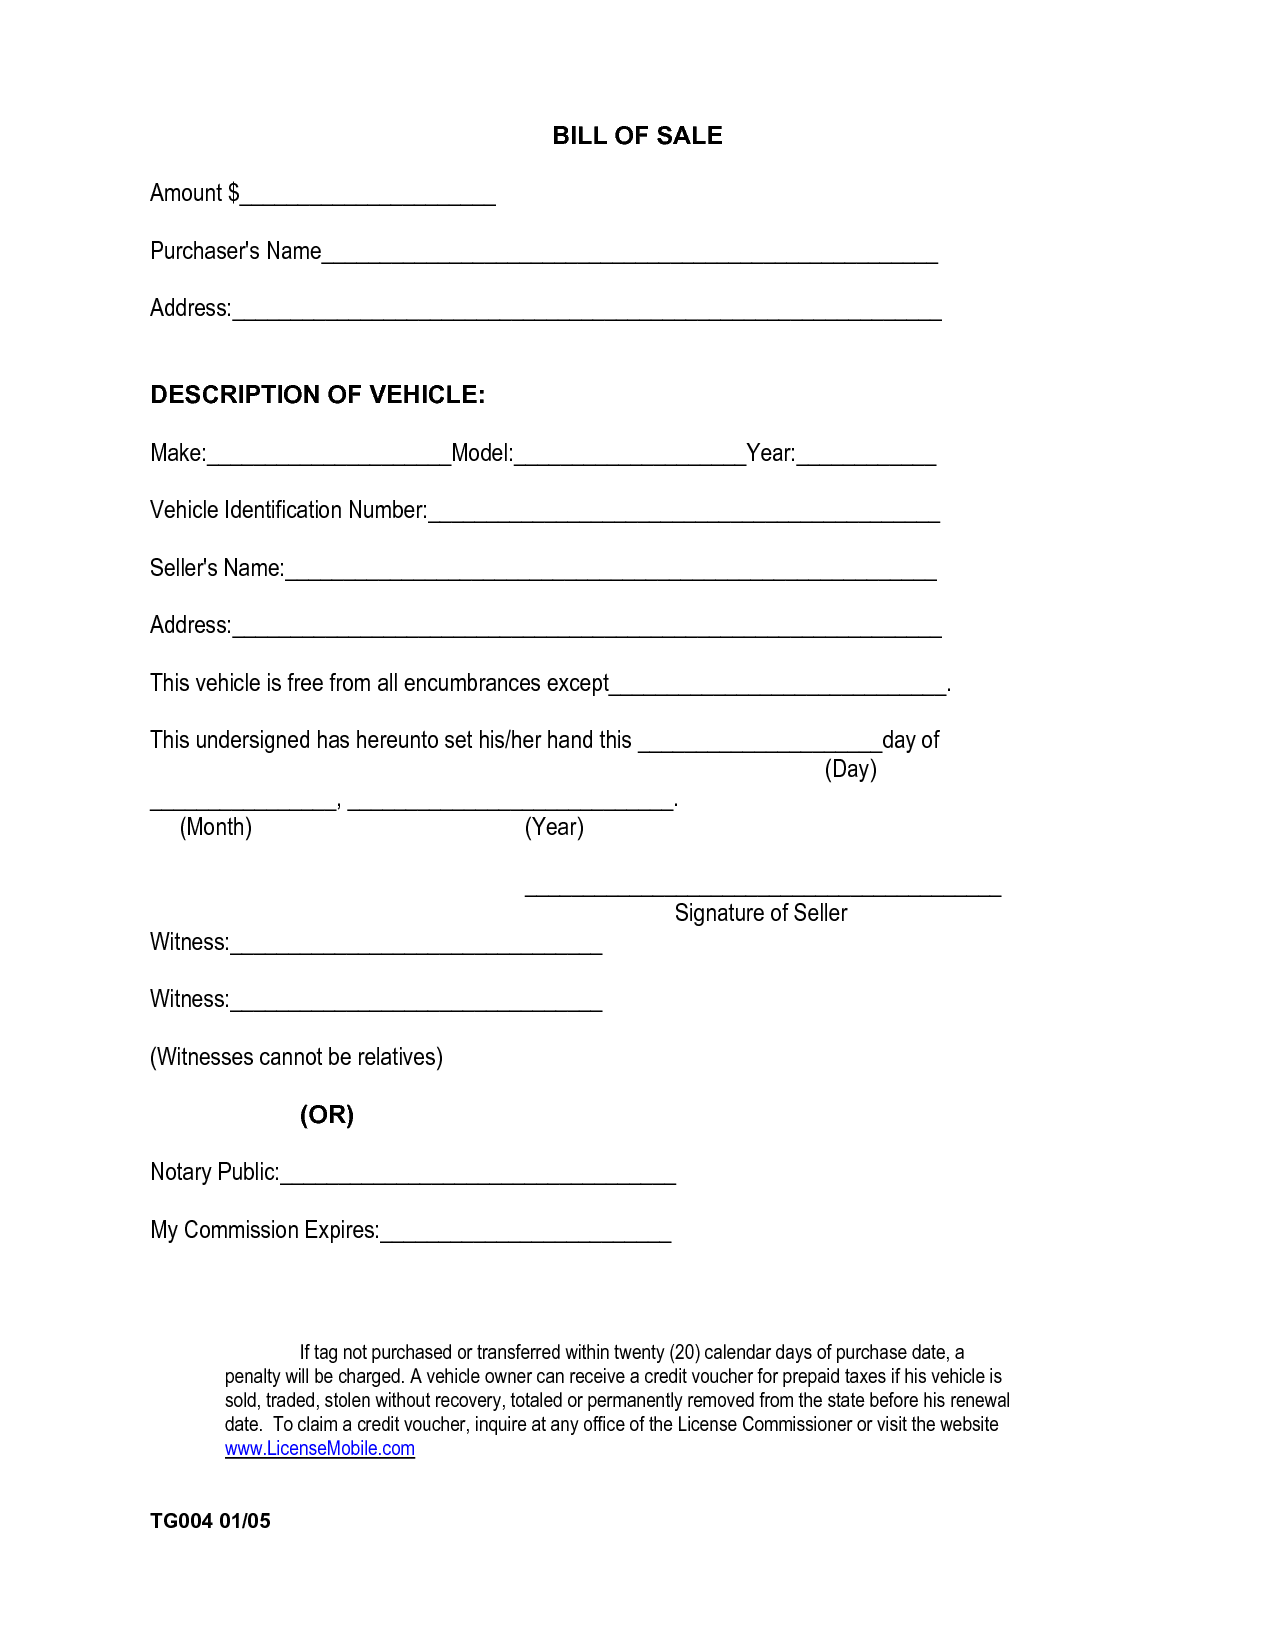 Bill Of Sale Used Car Template and Printable Sample Car Bill Of Sale form Laywers Template forms